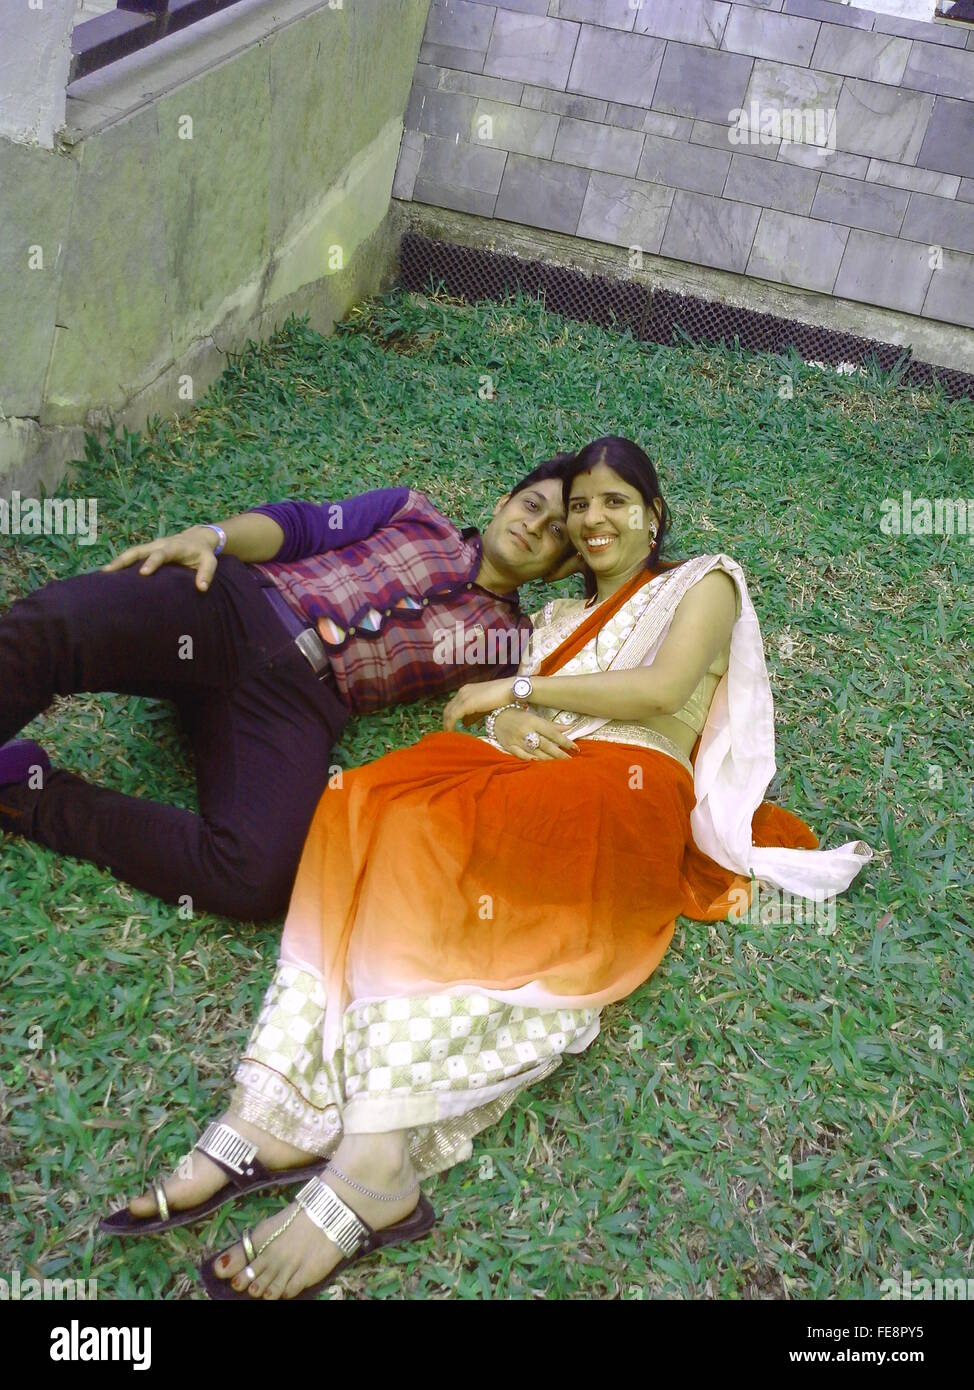 Portrait Of A Young Couple Lying On Grass - Stock Image